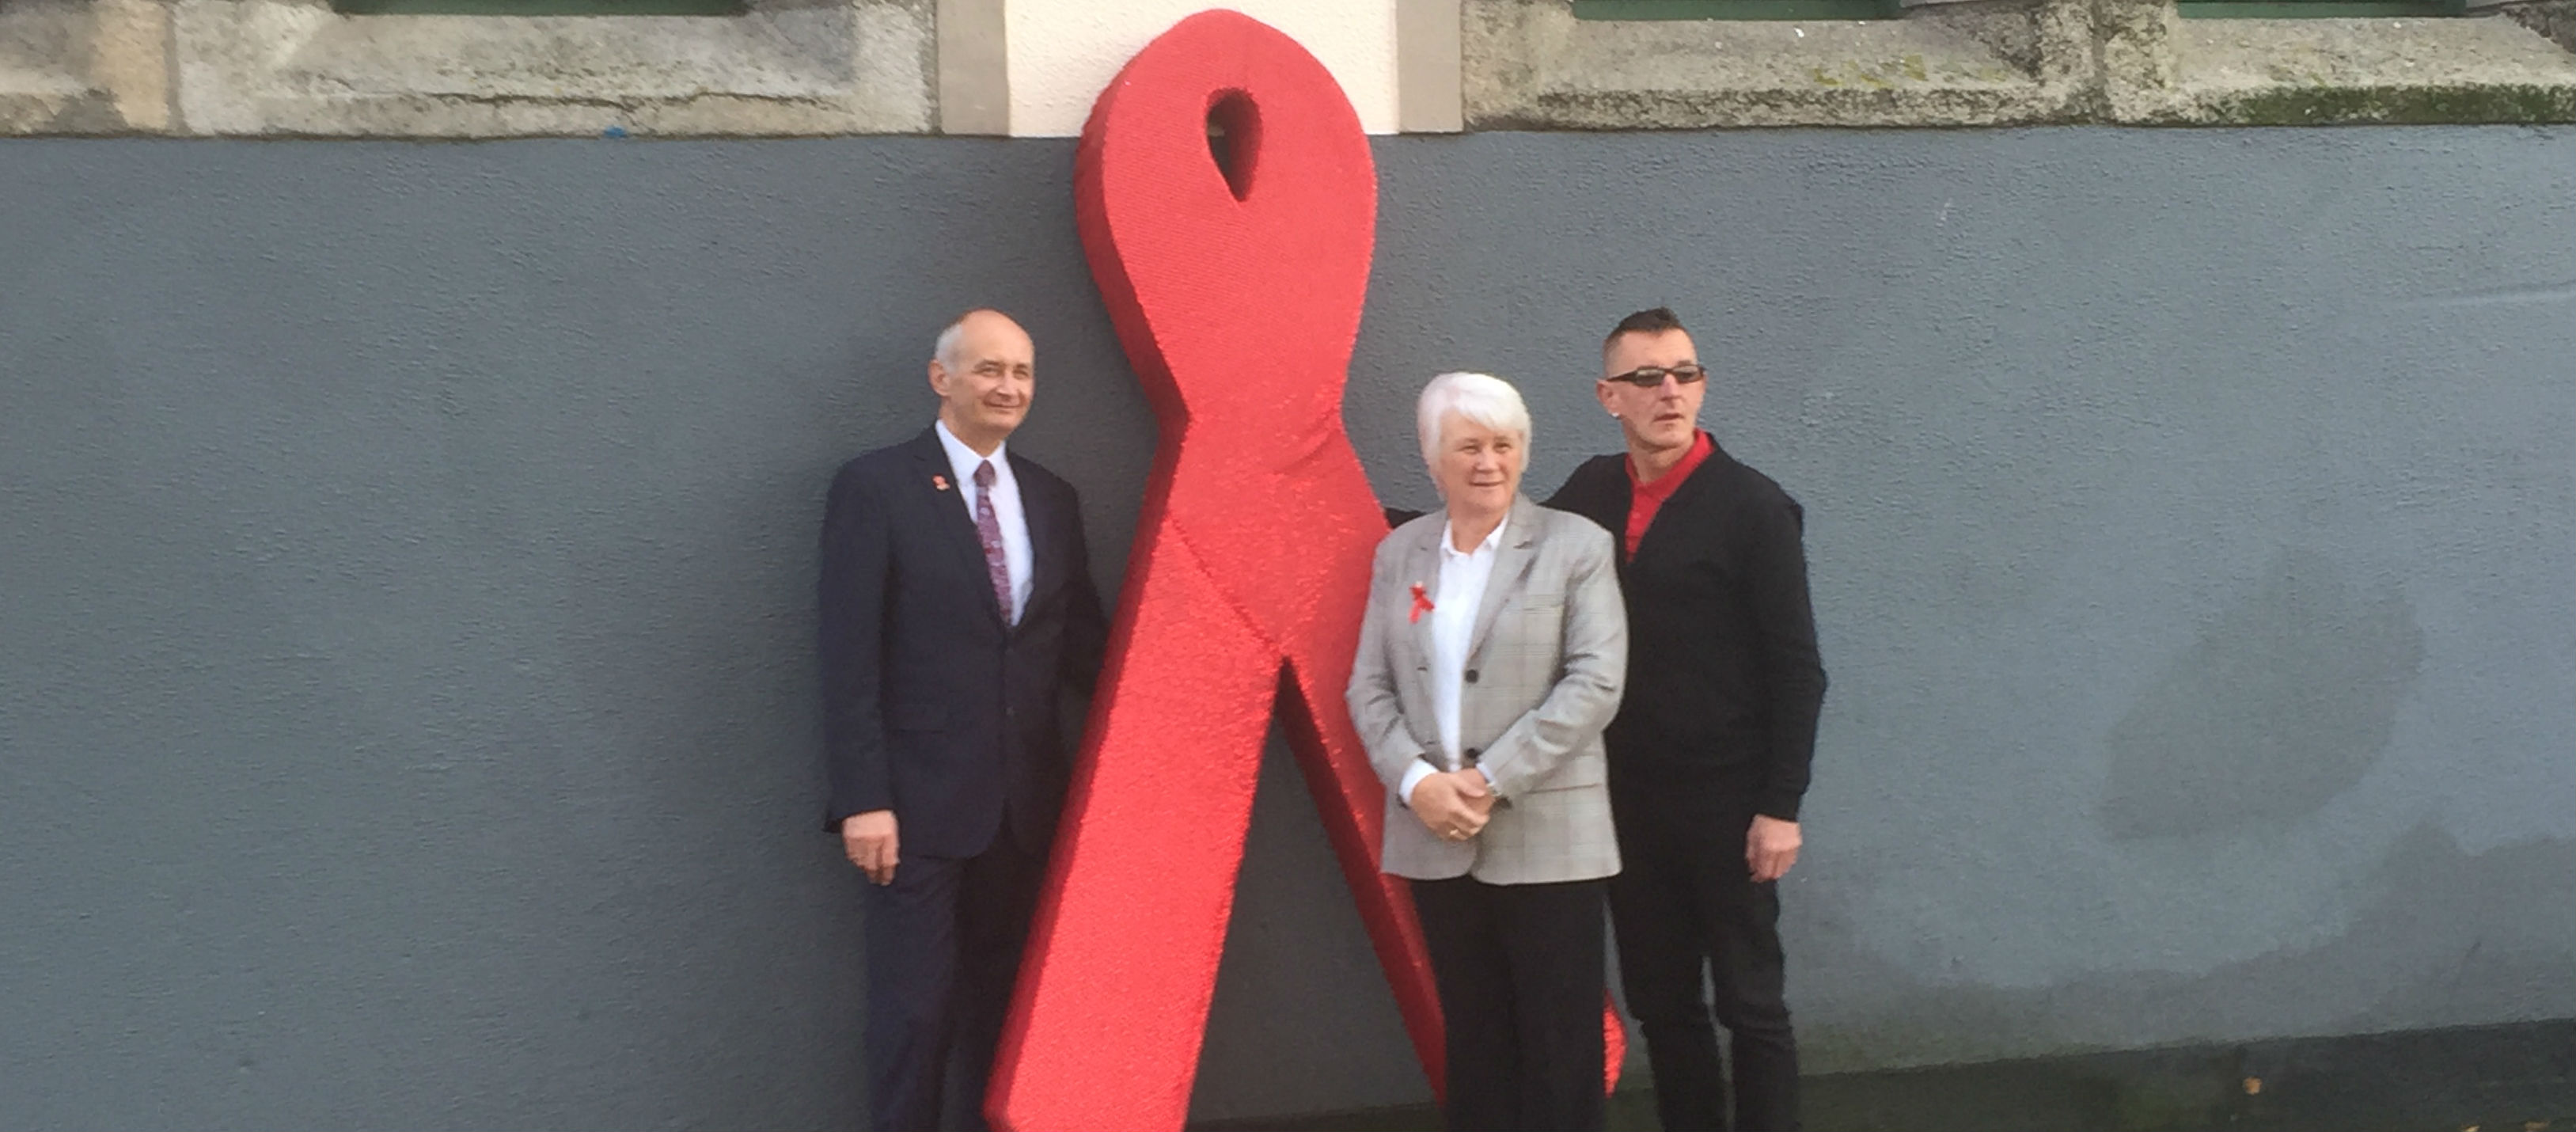 There Are Misconceptions Around HIV